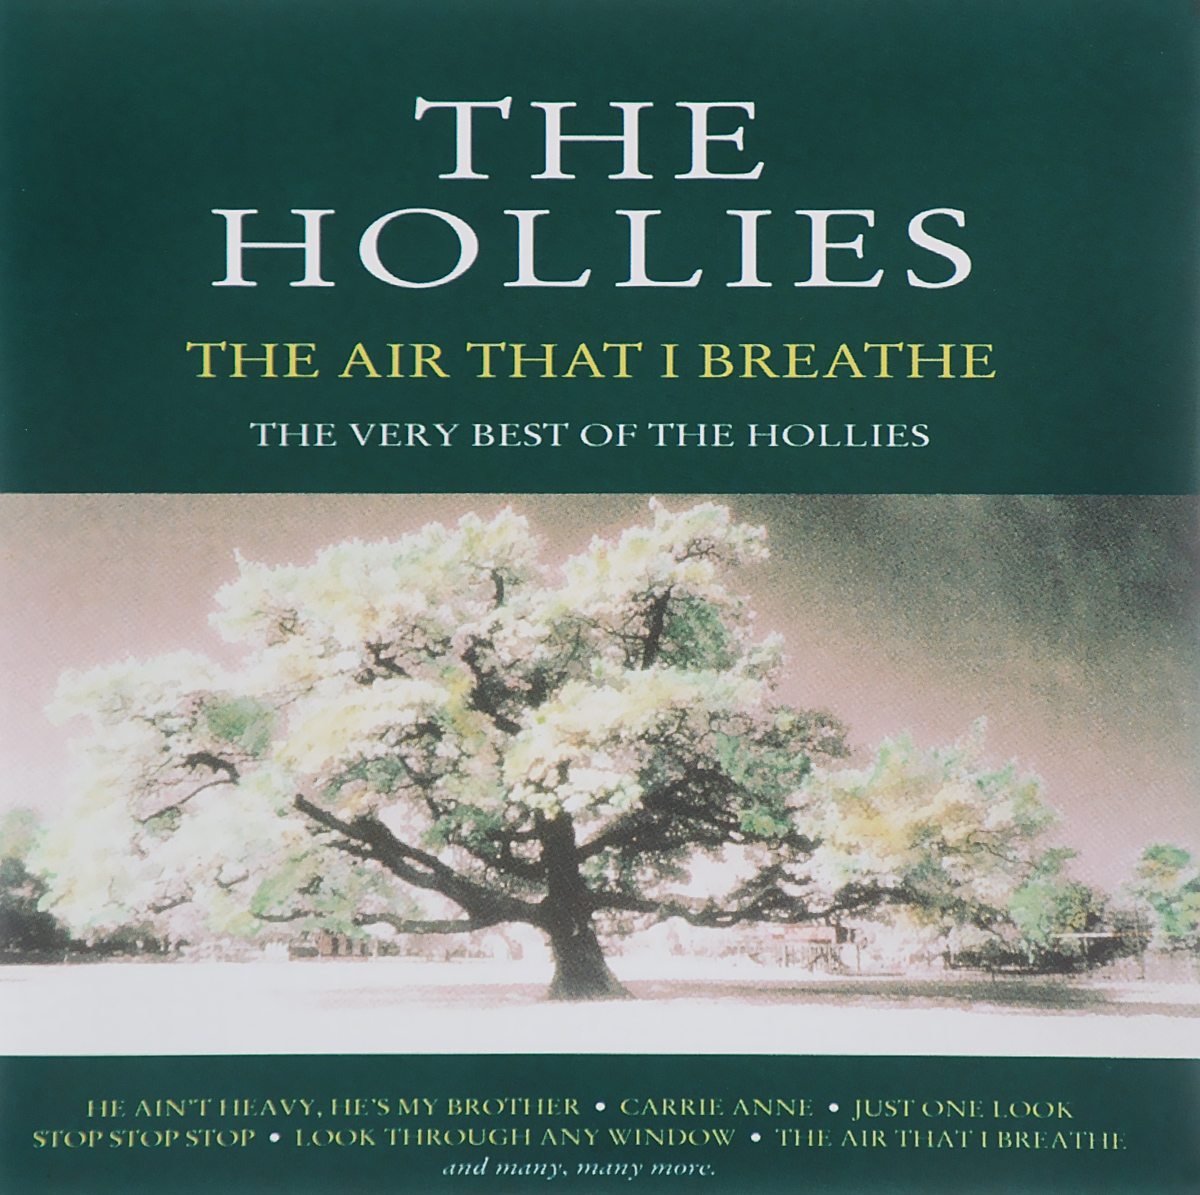 The Hollies The Hollies. Air That I Breathe. The Very Best Of The Hollies the very best of bach